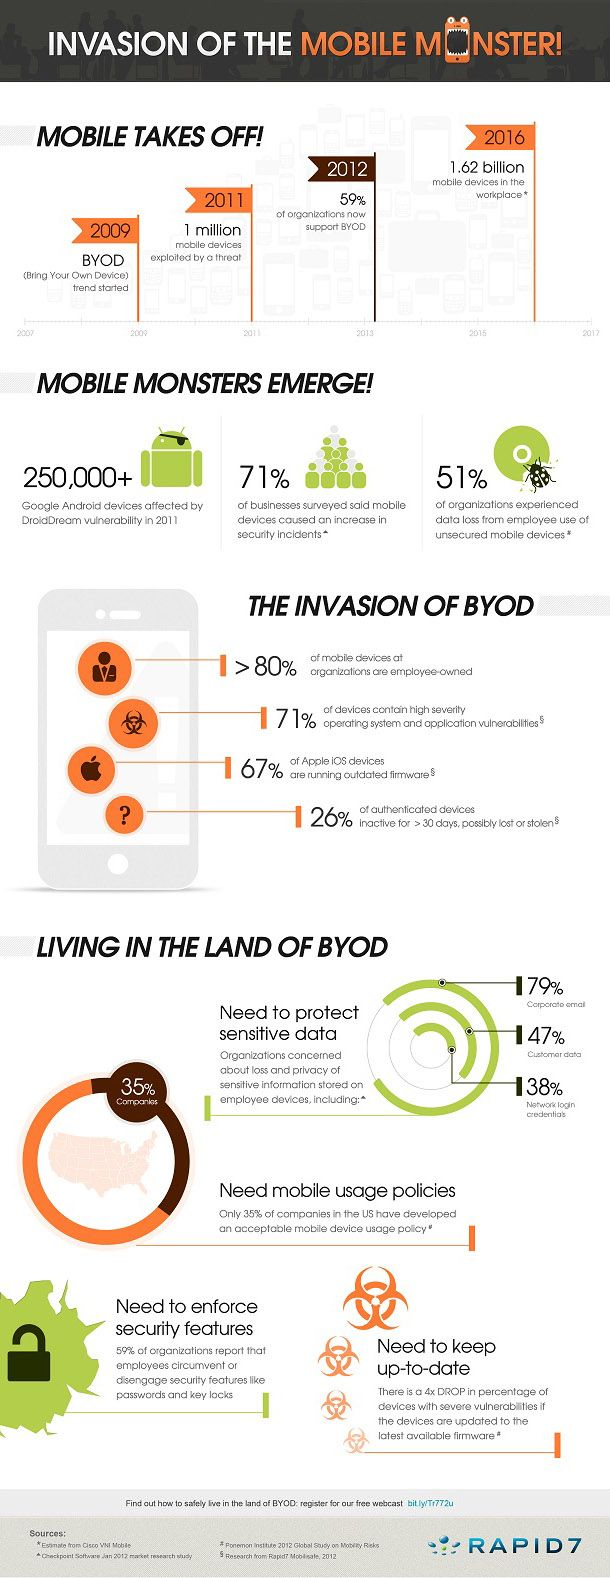 Here's how BYOD turns into a monster #rapid7